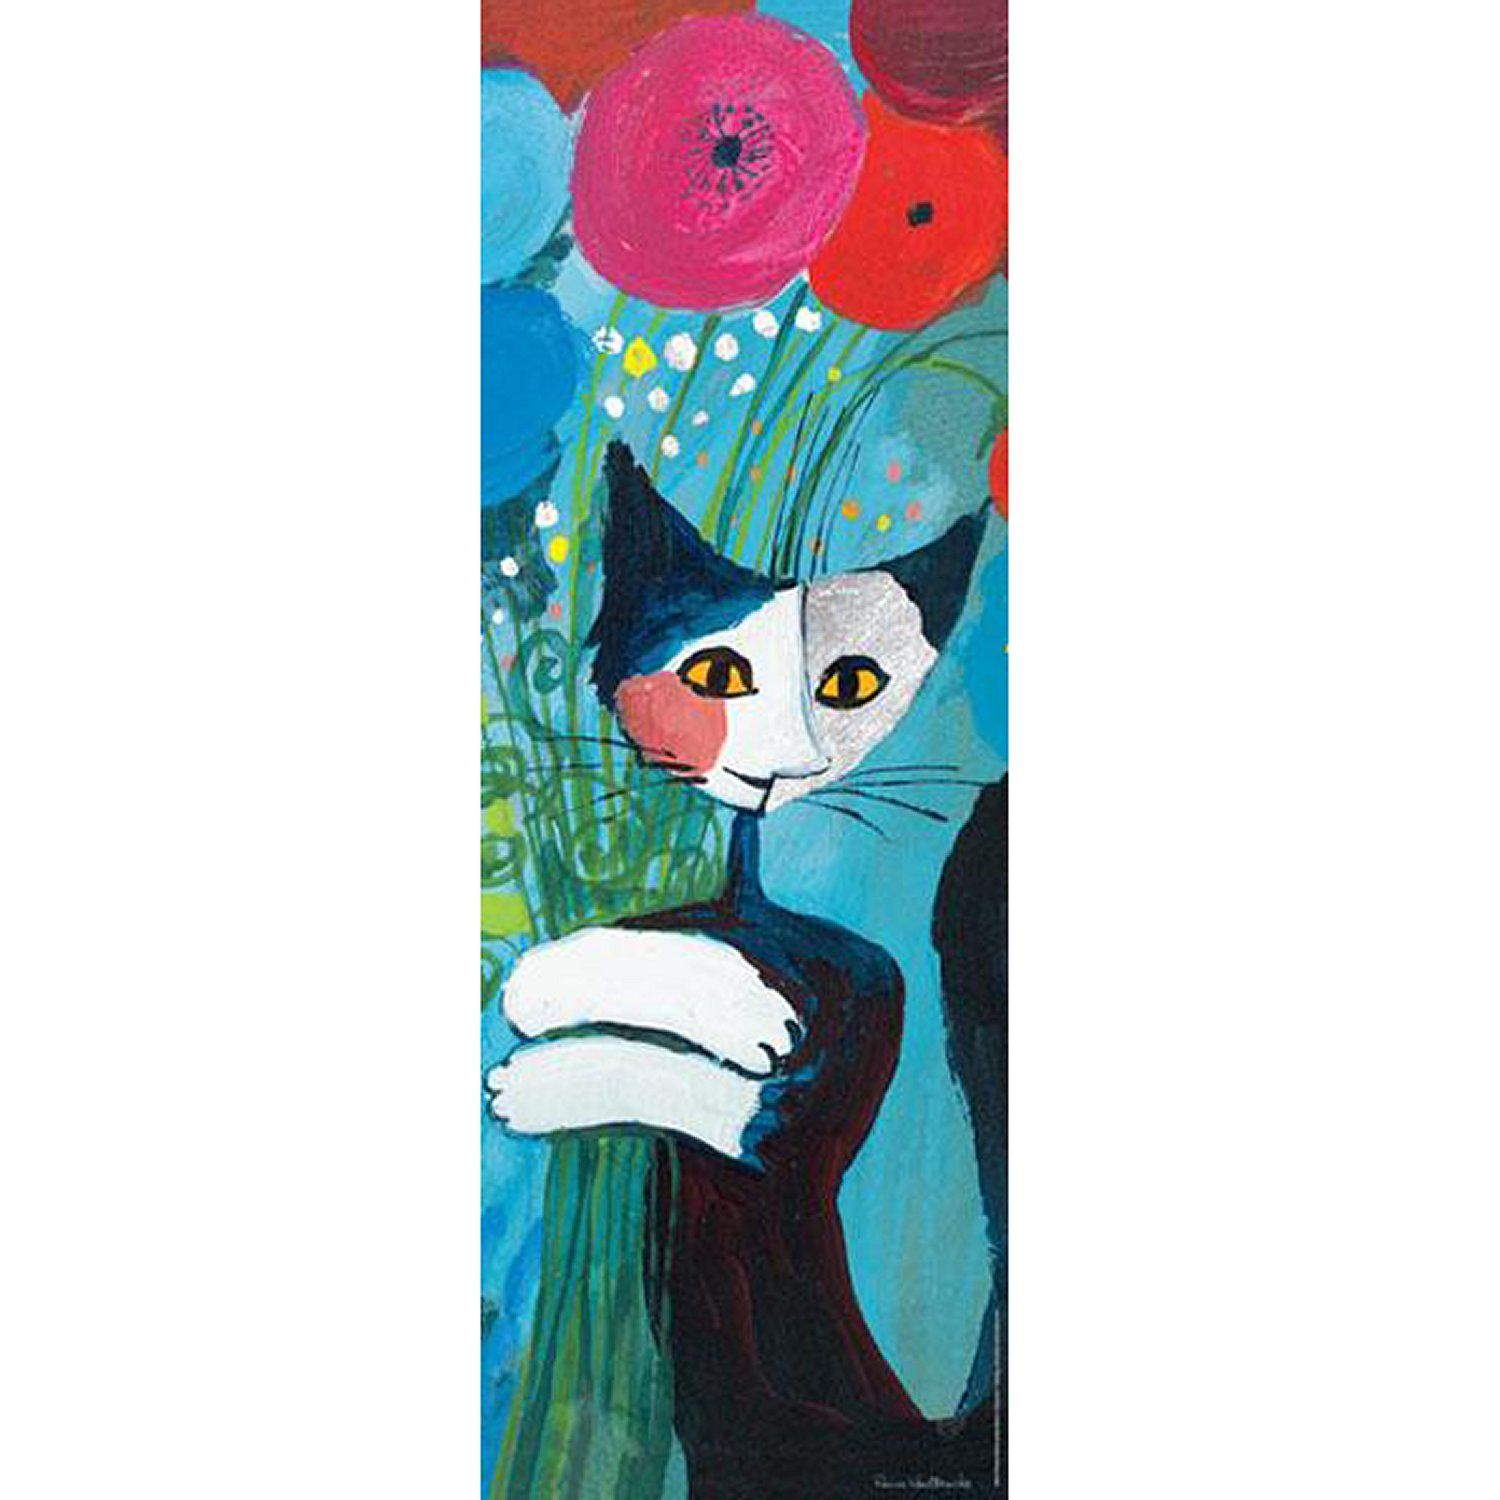 1000 Rosina Wachtmeister Pièces Heye Puzzle Vertical dtrsQCxh